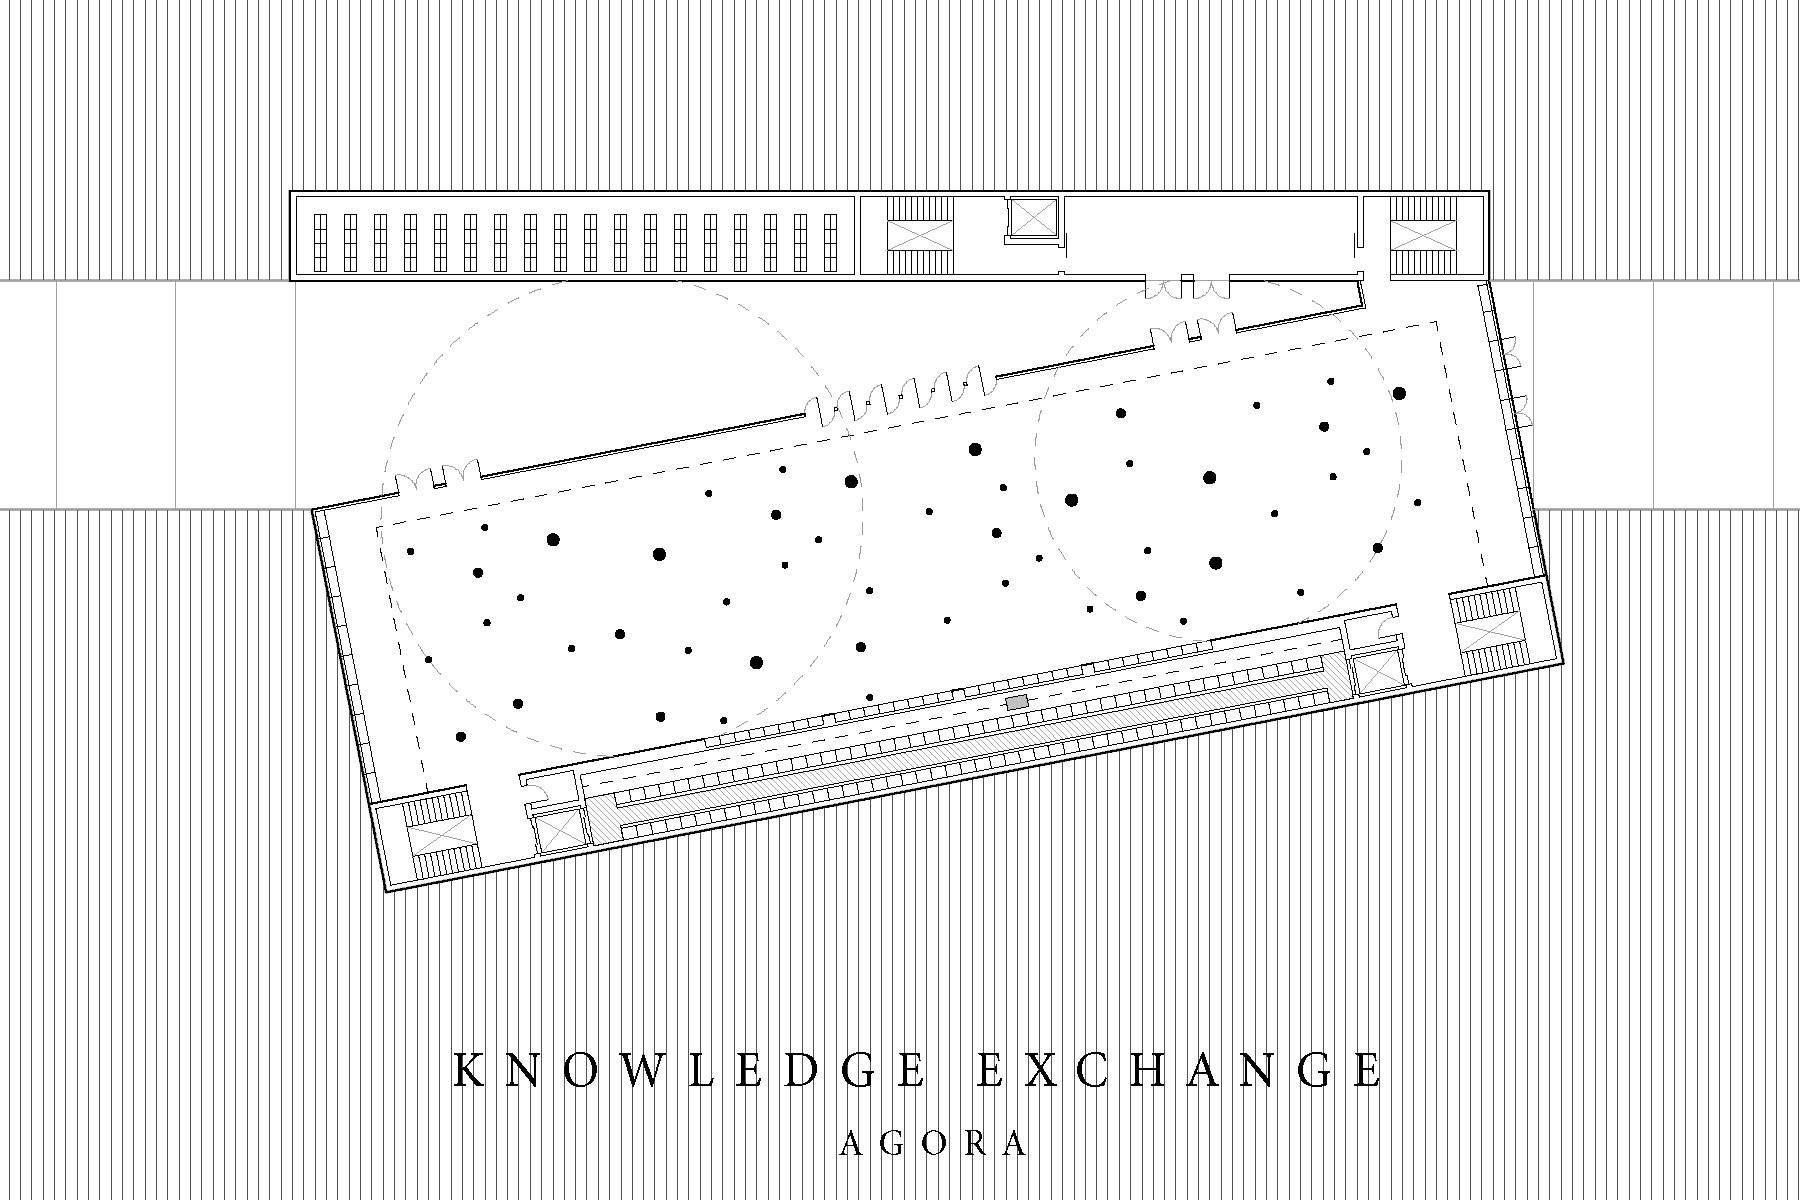 knowledge exchange submission_white_Page_09.jpg